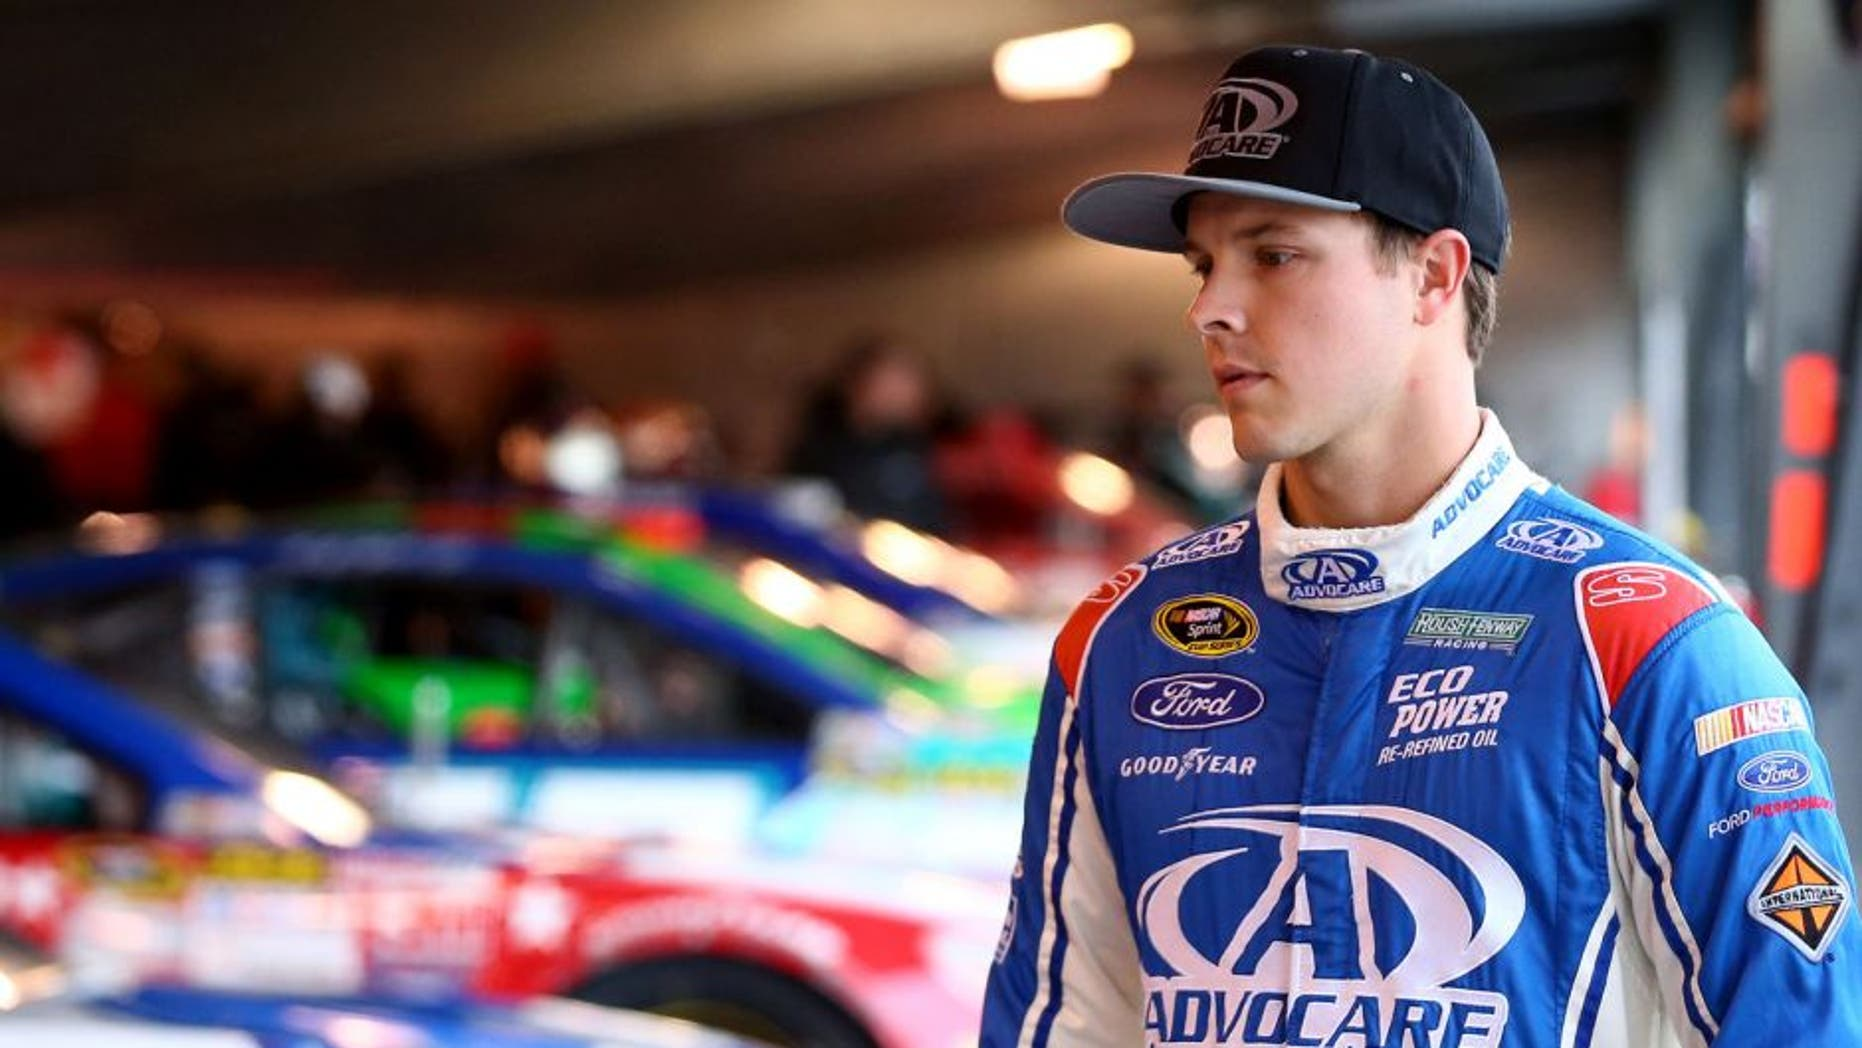 MARTINSVILLE, VA - OCTOBER 31: Trevor Bayne, driver of the #6 AdvoCare Ford, stands in the garage area during practice for the NASCAR Sprint Cup Series Goody's Headache Relief Shot 500 at Martinsville Speedway on October 31, 2015 in Martinsville, Virginia. (Photo by Sarah Crabill/Getty Images)